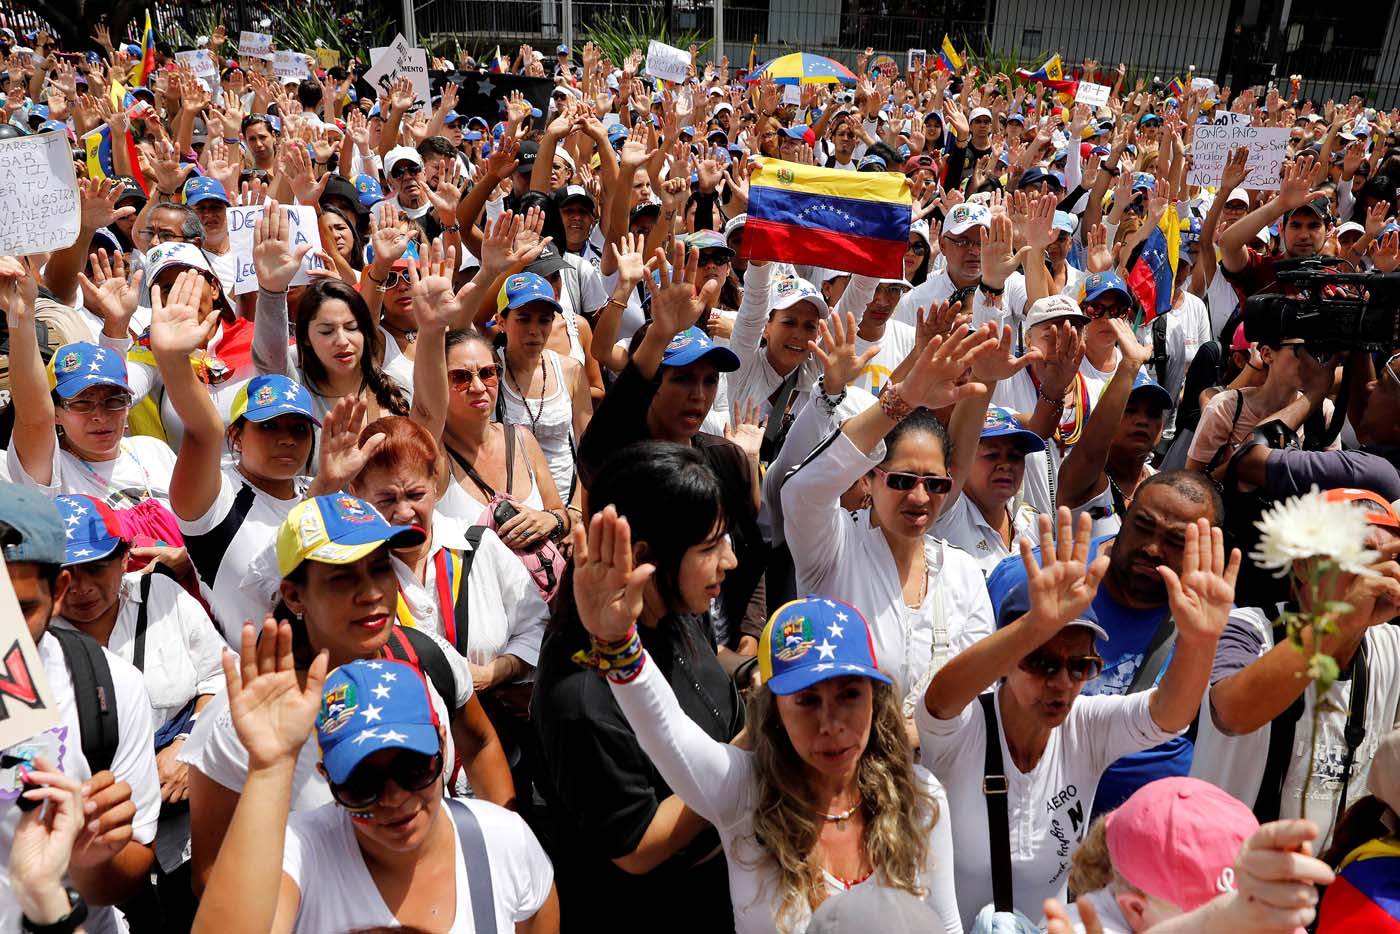 Women lift their hands as they attend a women's march to protest against President Nicolas Maduro's government in Caracas, Venezuela May 6, 2017. REUTERS/Carlos Garcia Rawlins